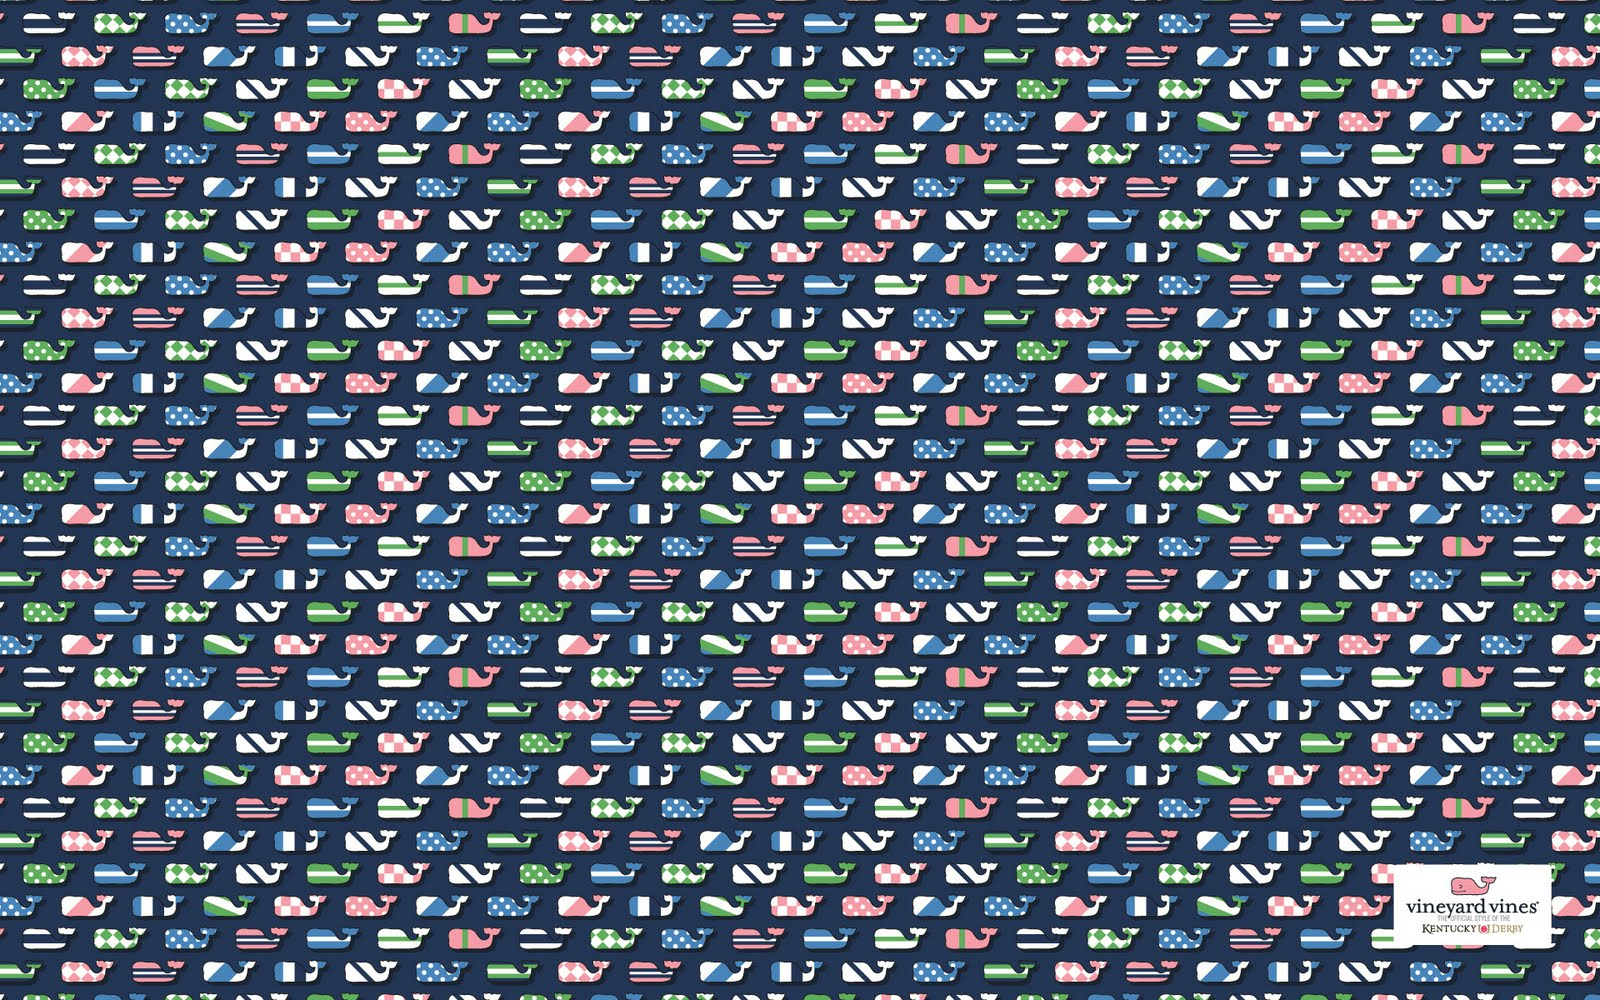 50] Vineyard Vines Desktop Wallpaper on WallpaperSafari 1600x1000